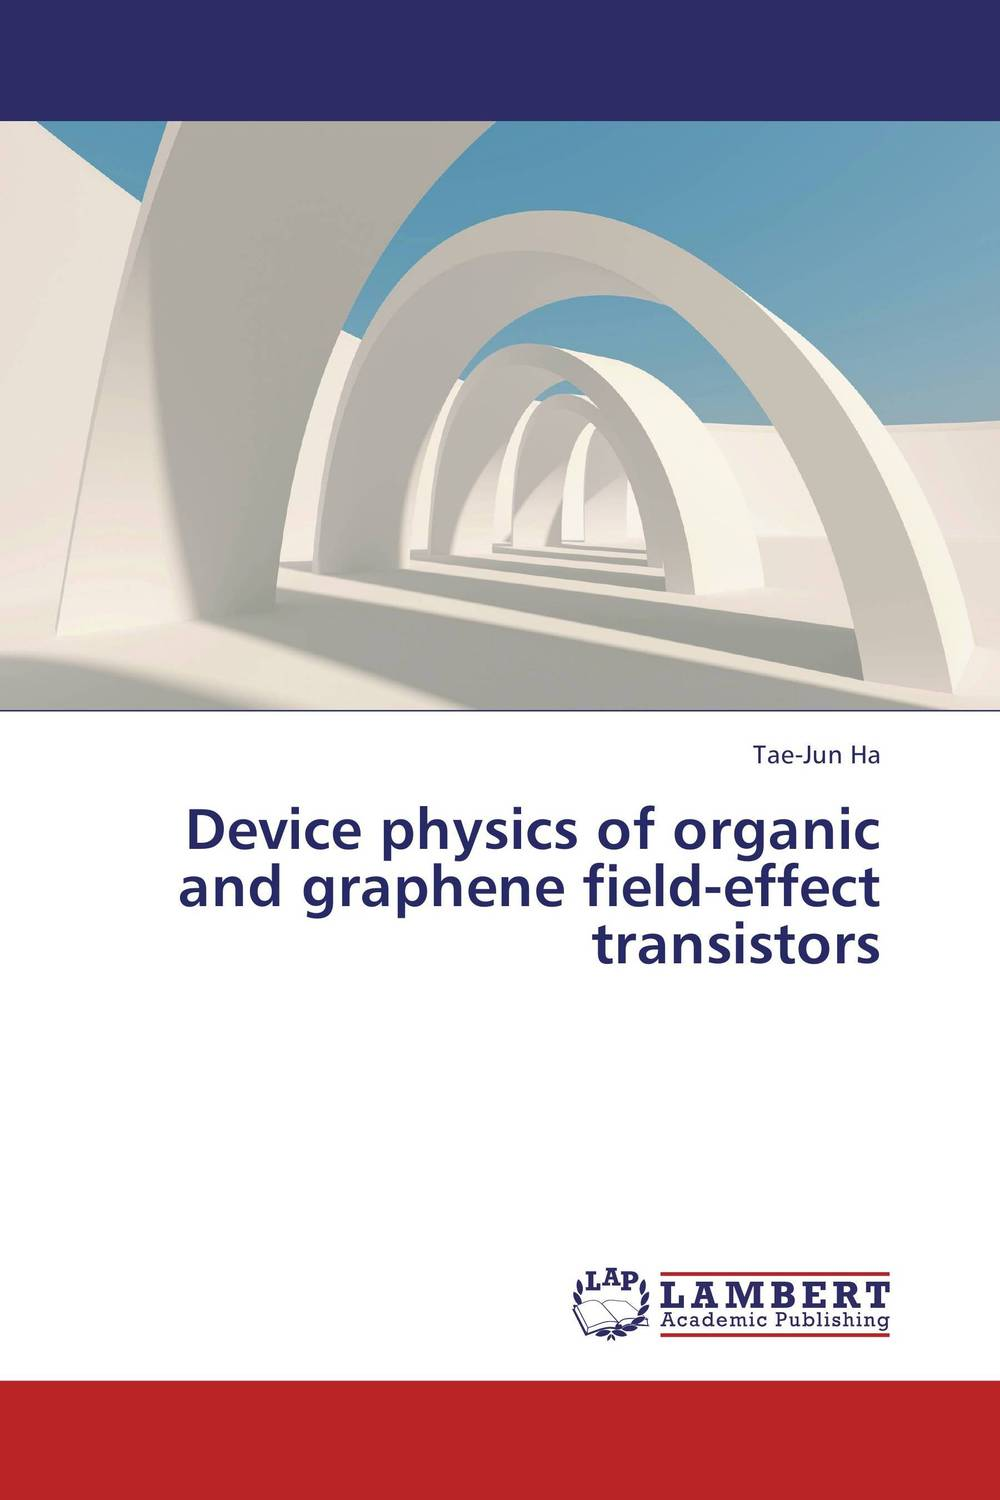 Device physics of organic and graphene field-effect transistors fundamentals of physics extended 9th edition international student version with wileyplus set